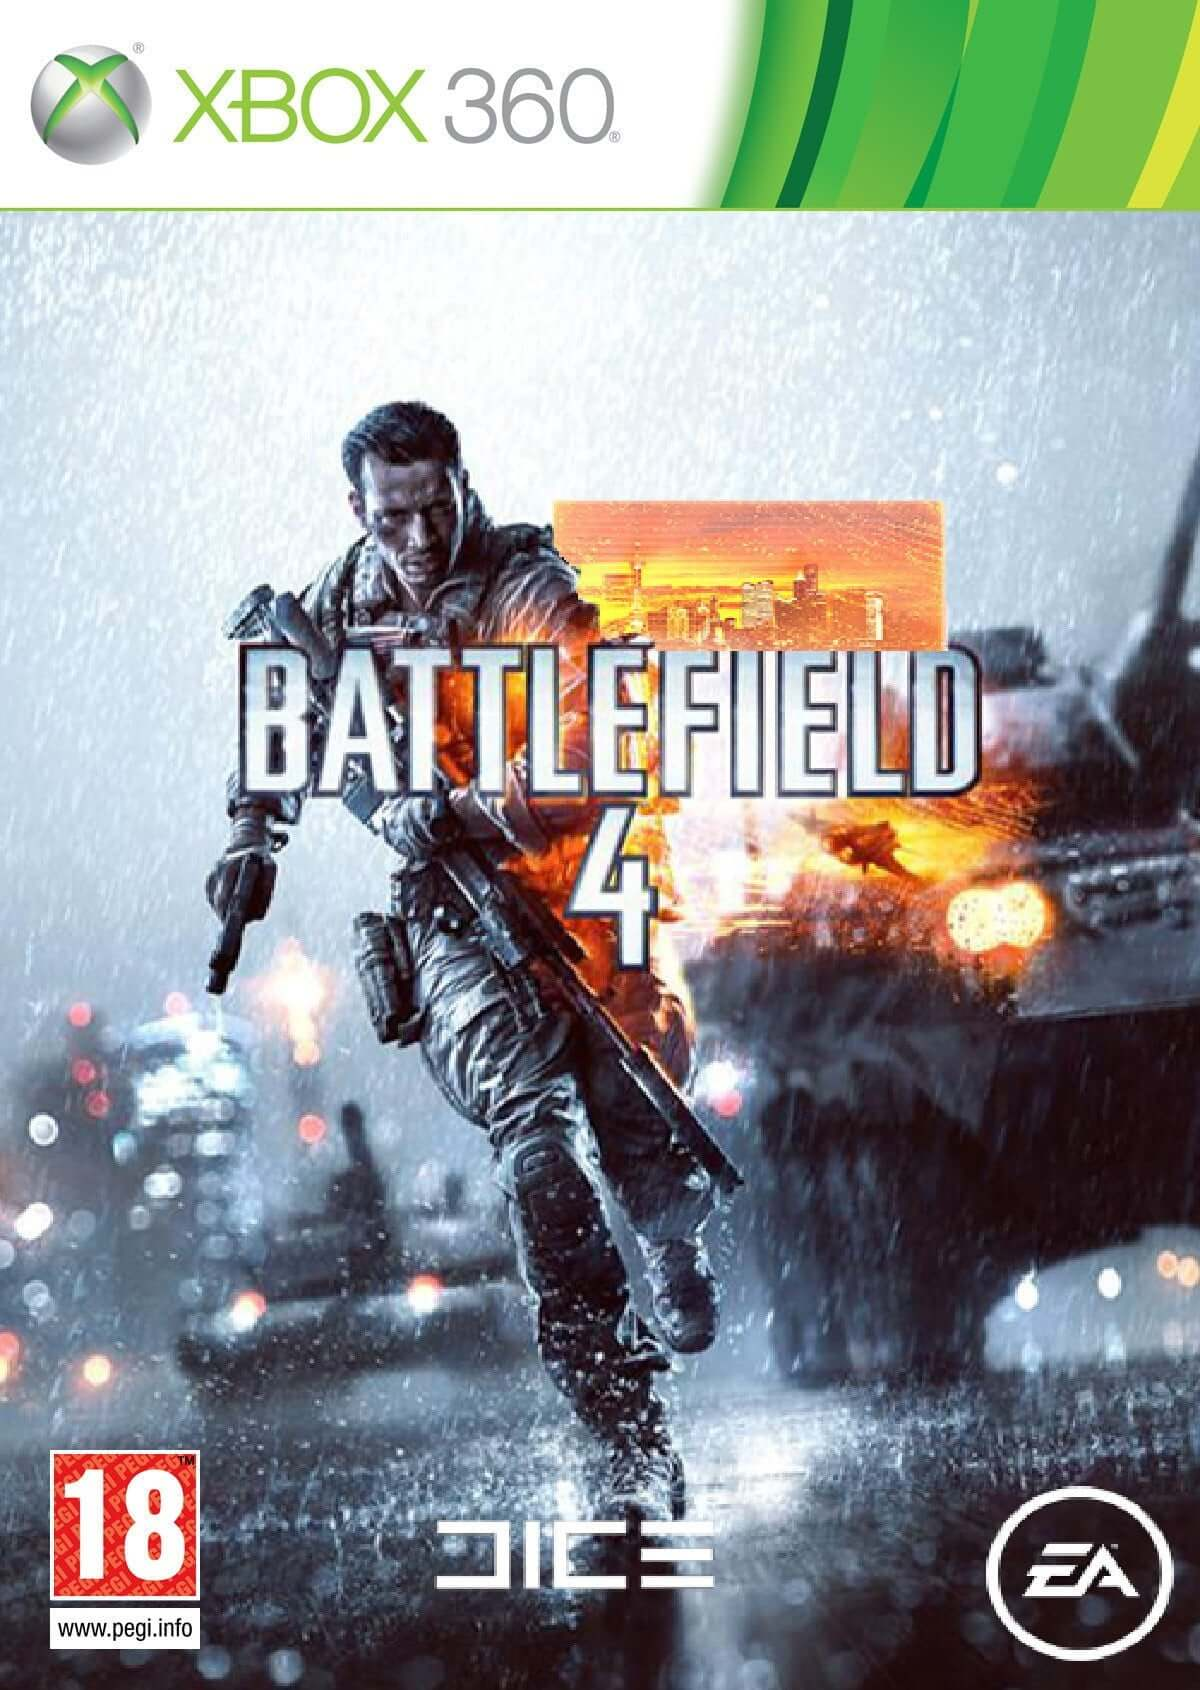 Battlefield 4 (XBOX 360) XBOX 360 Game - Shamy Stores